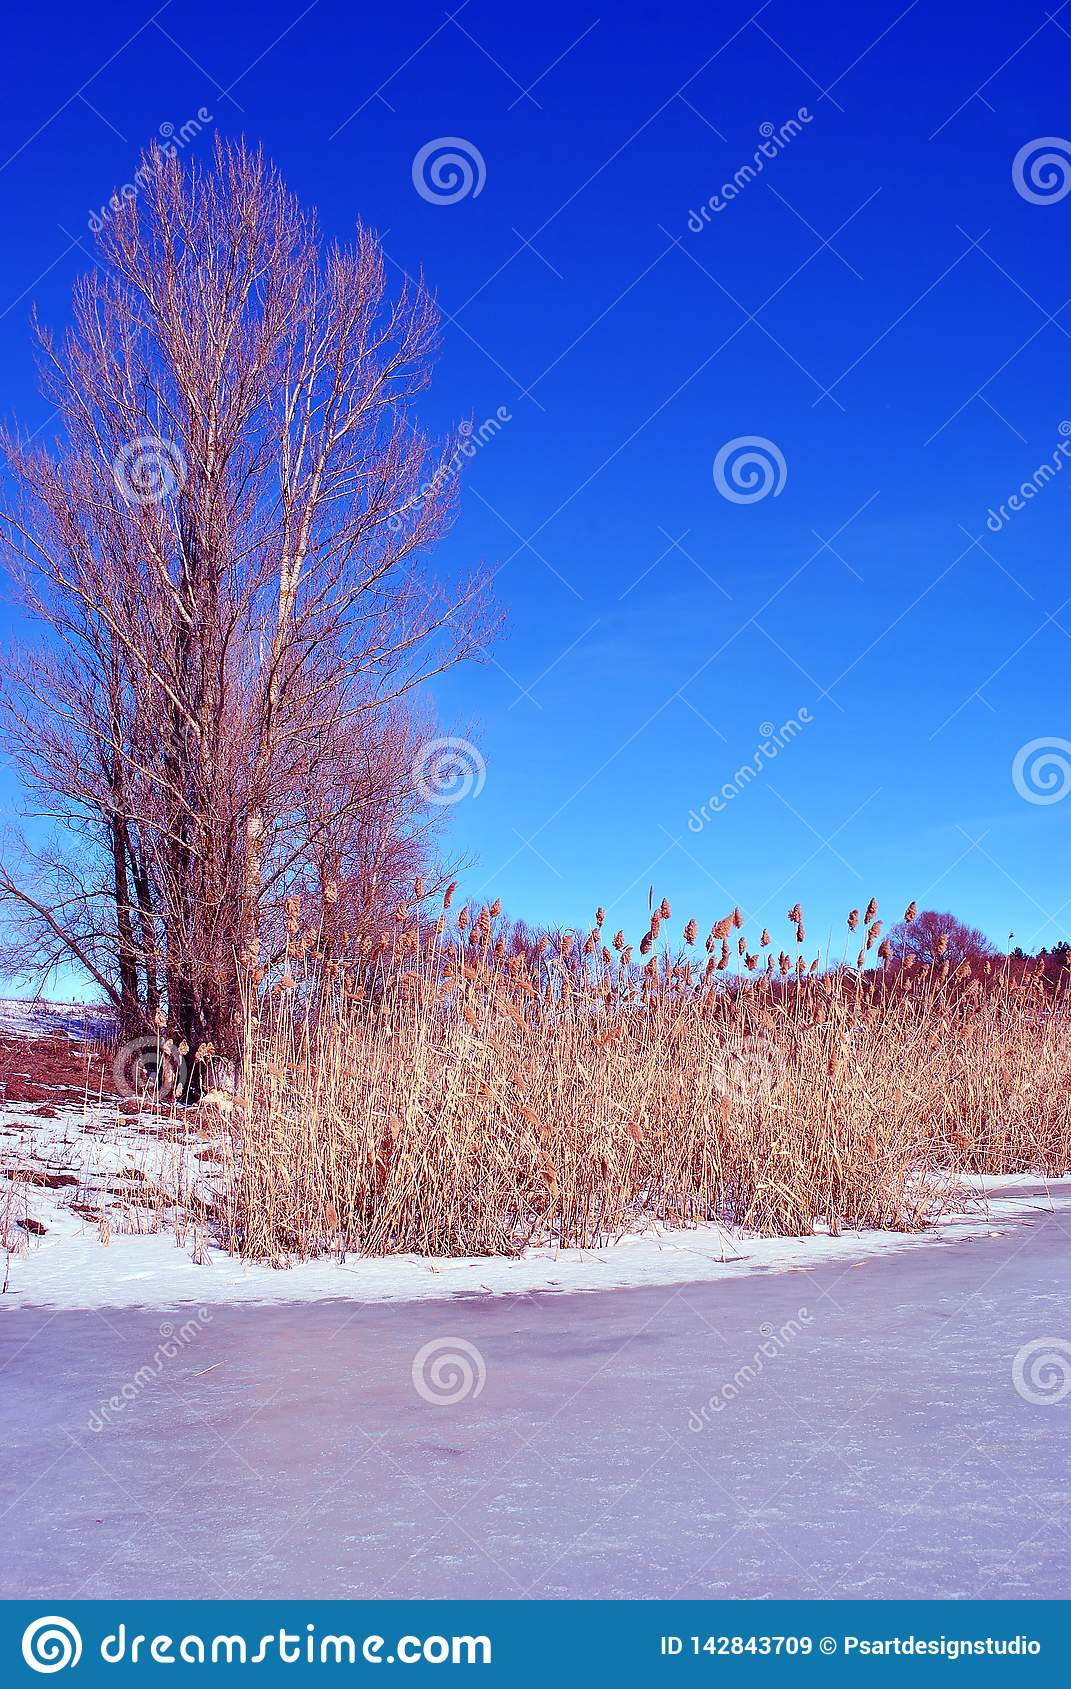 Bright yellow dry reeds on river bank with poplar trees without leaves, hills covered with snow, sky background